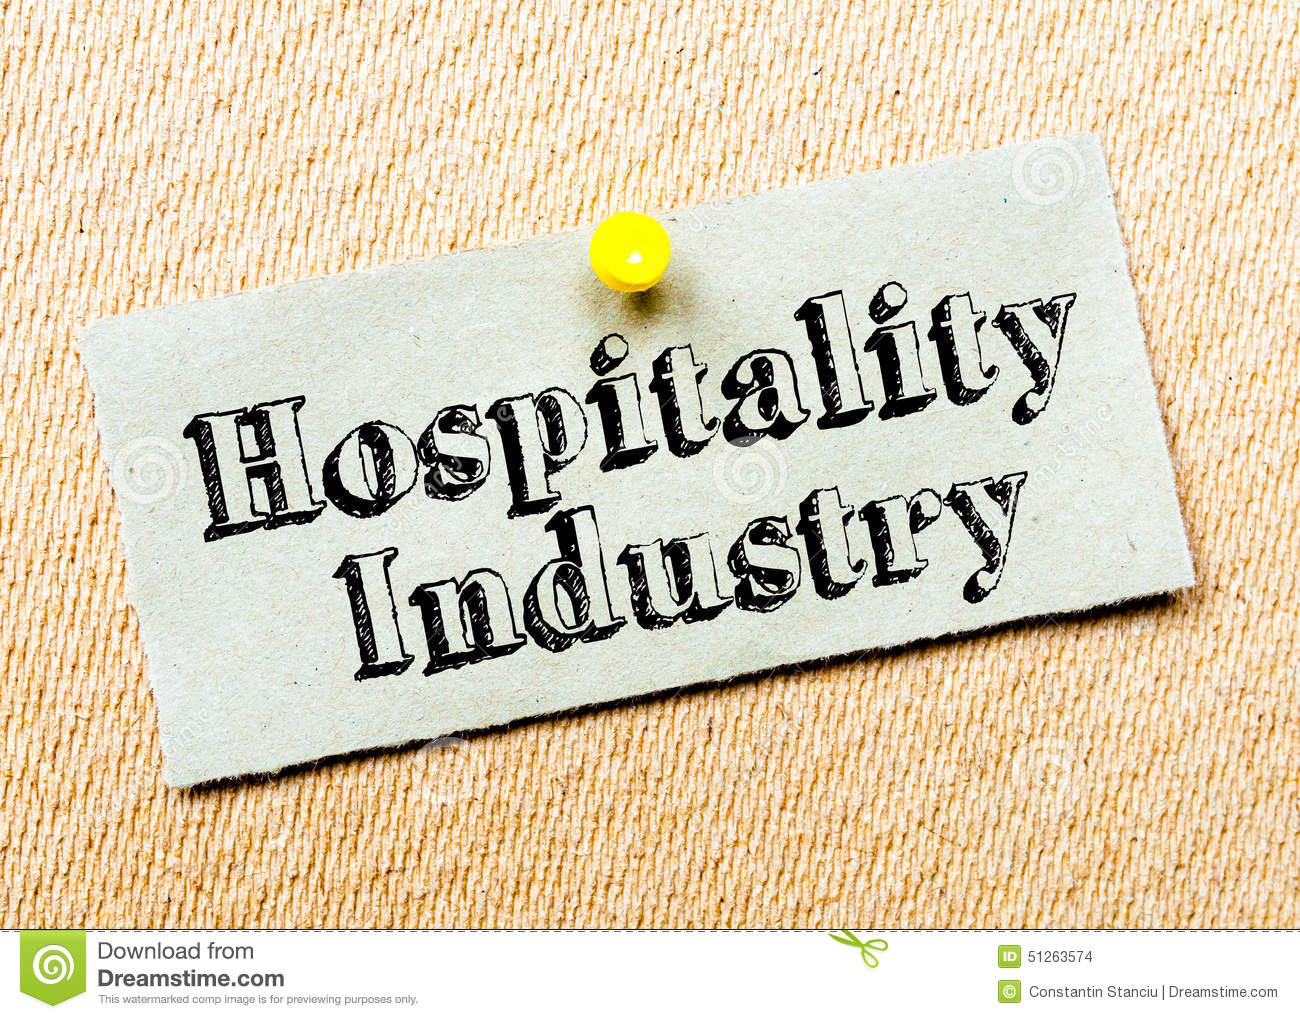 essay on career in hospitality industry Introduction:hospitality industry:importance of human resource in hospitality industry:  use this industry as the ending career,  the writepass journal.